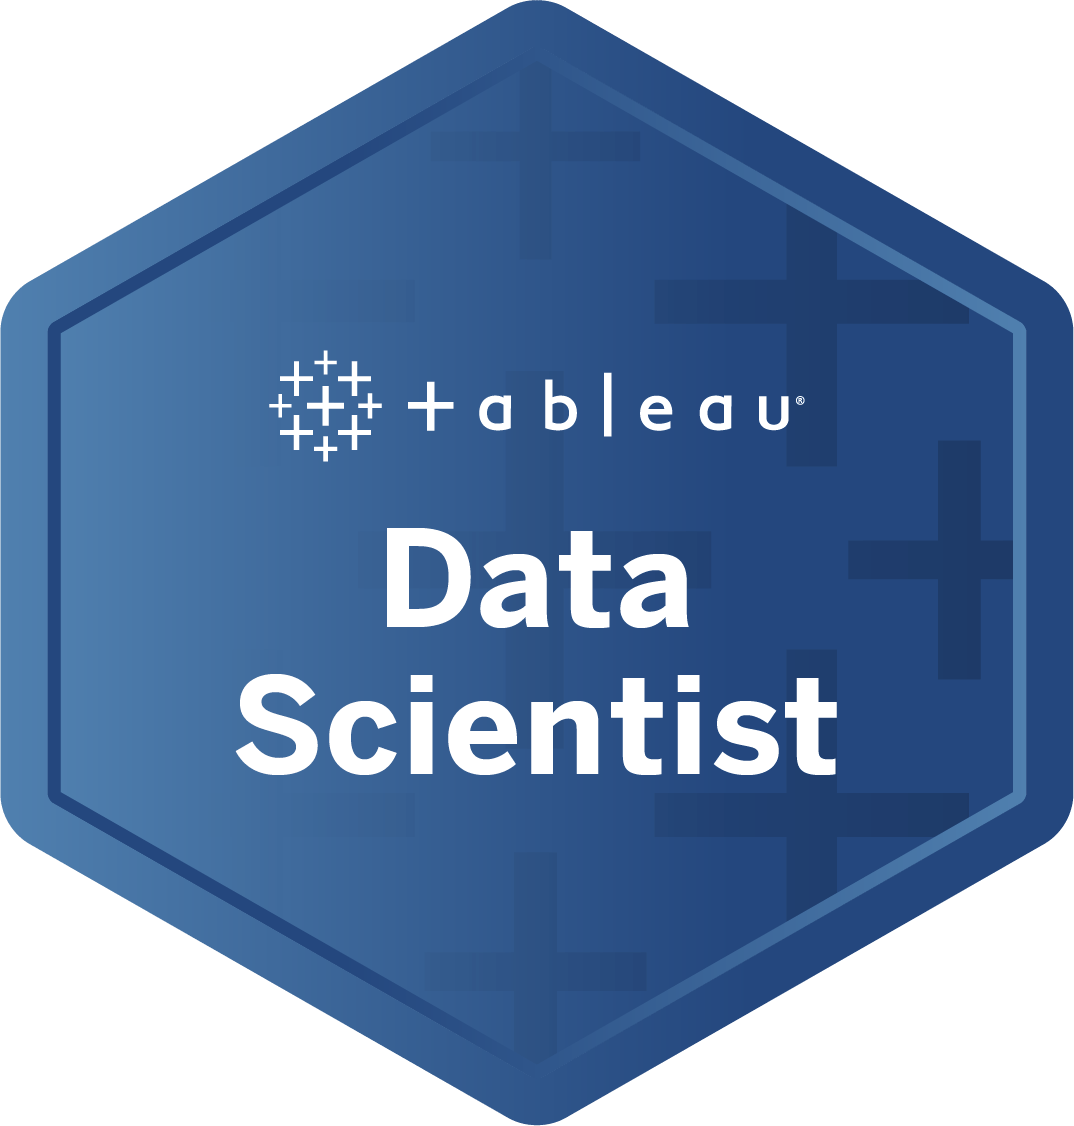 Data Scientist badge